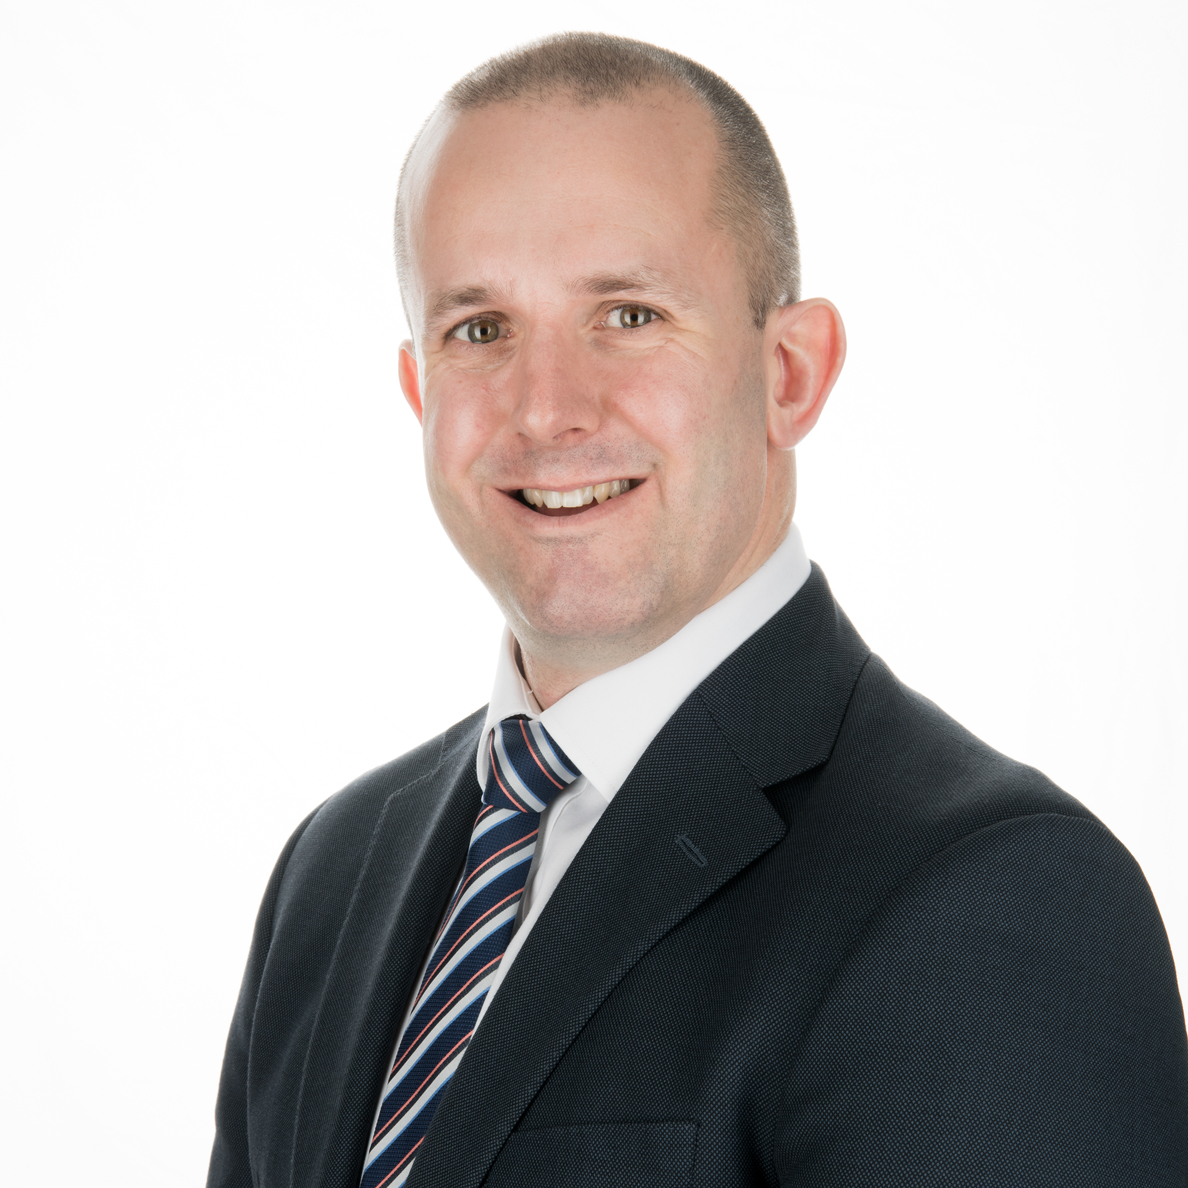 <strong>Matt Horwell, Regional Sales Manager – Midlands and North West at Dennis Eagle</strong><br>